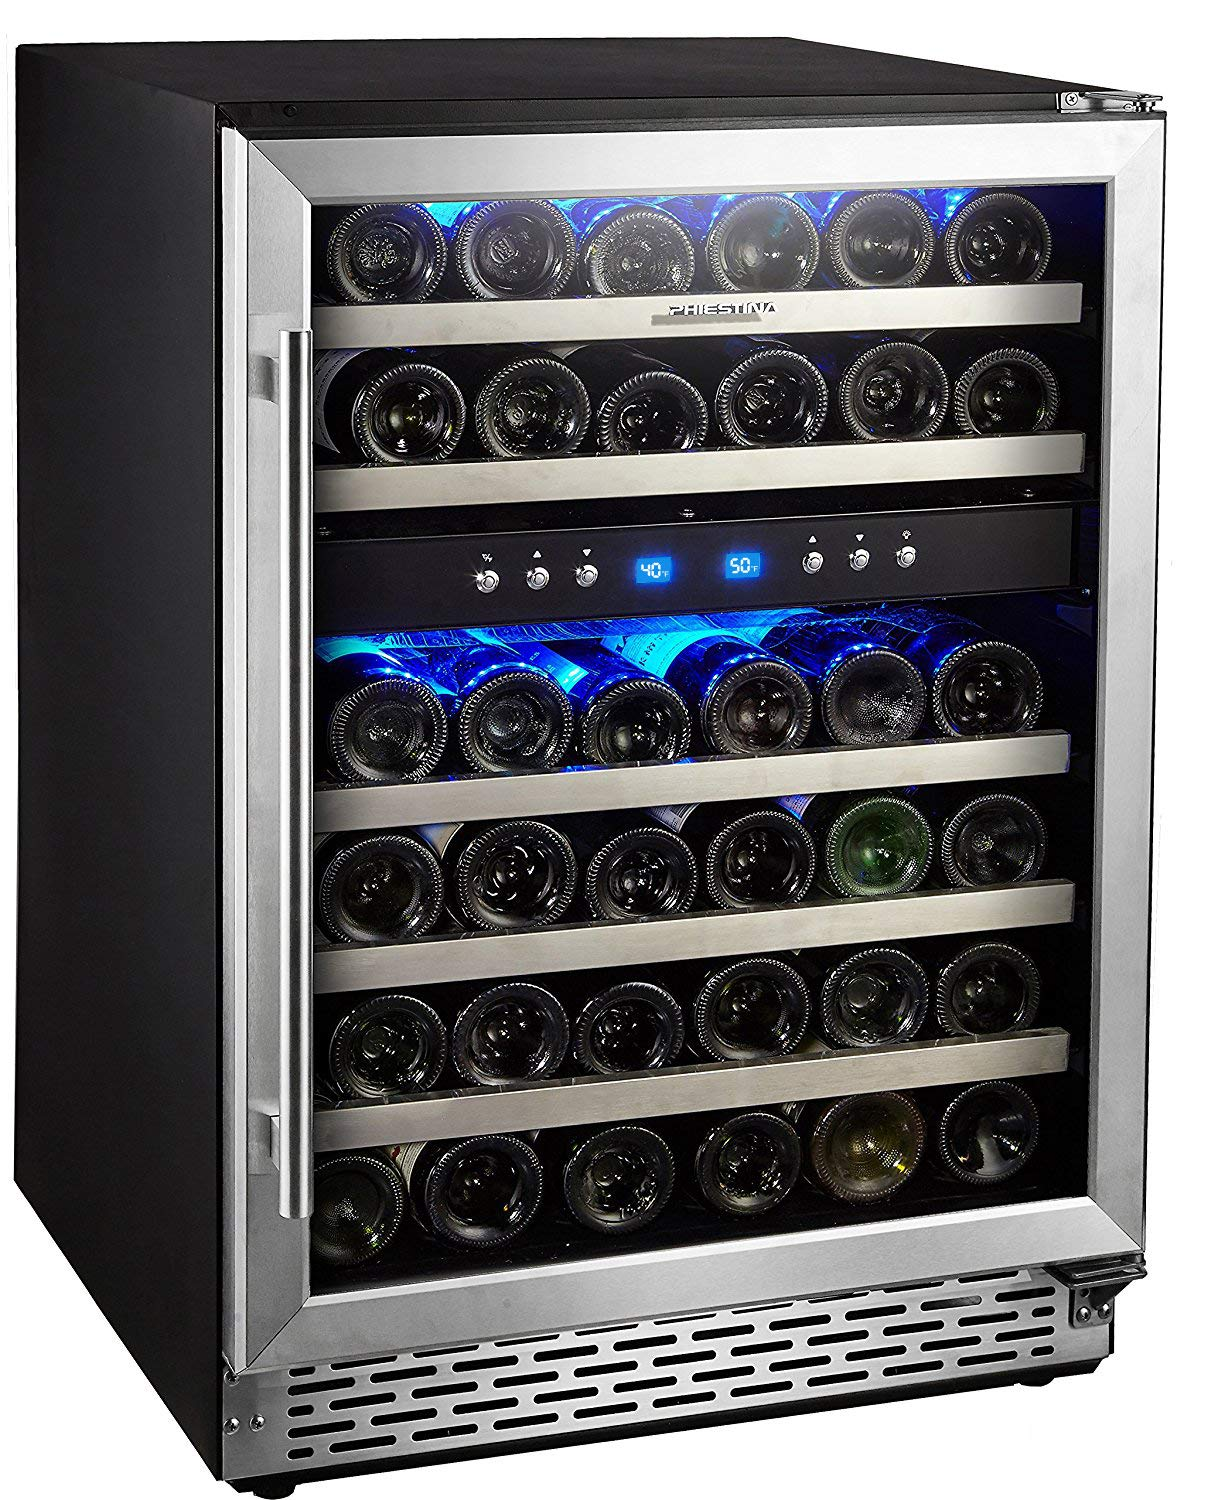 Phiestina 46 Bottle Wine cooler 24 Inch Dual Zone Built-In or Freestanding Wine Refrigerator with Compressor Cooling System by Phiestina